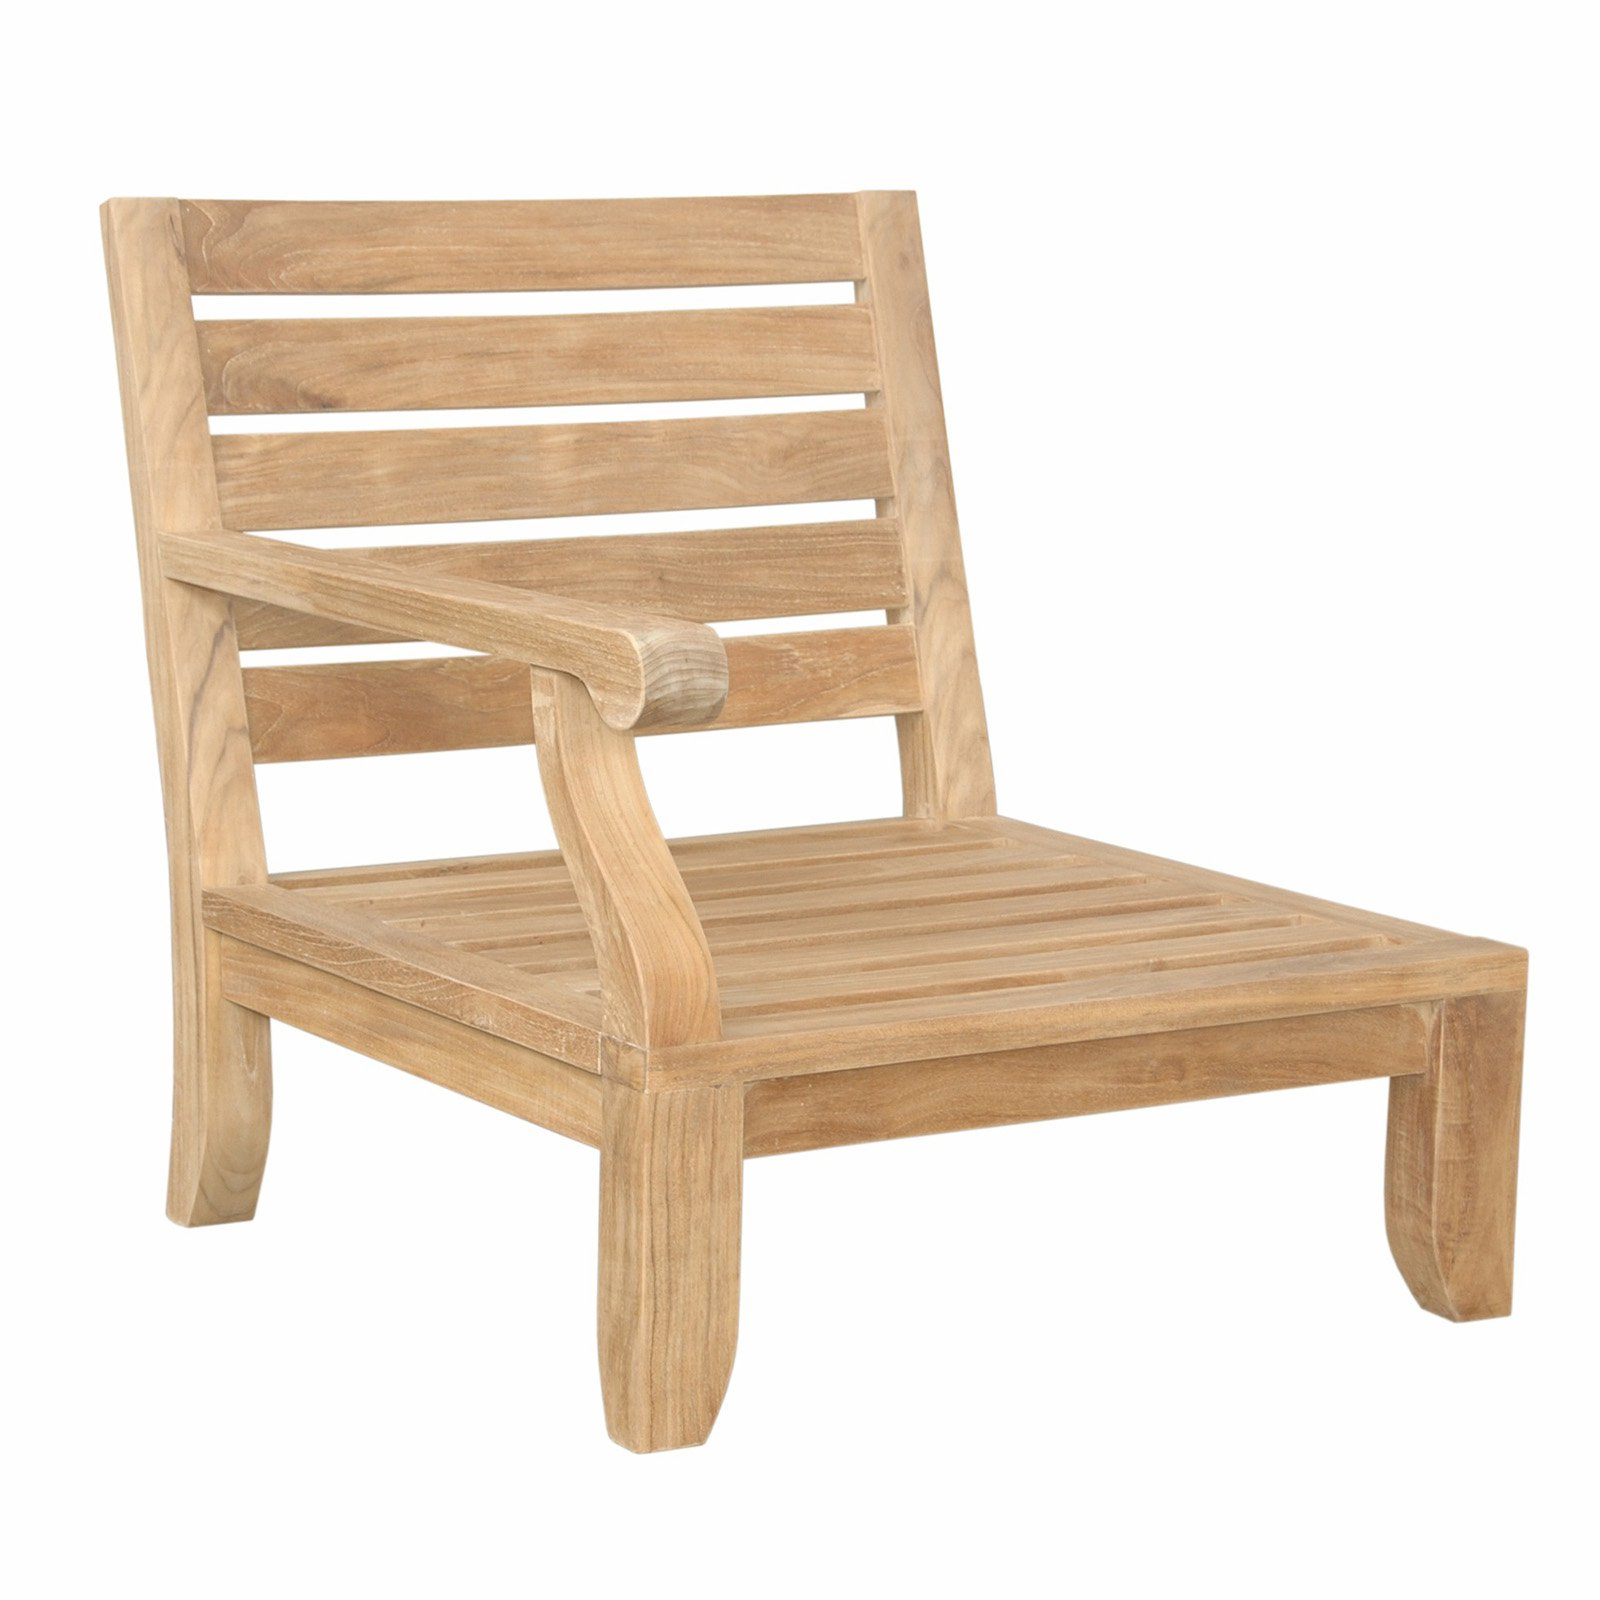 Anderson Teak Riviera Luxe Right Facing Outdoor Modular Chair